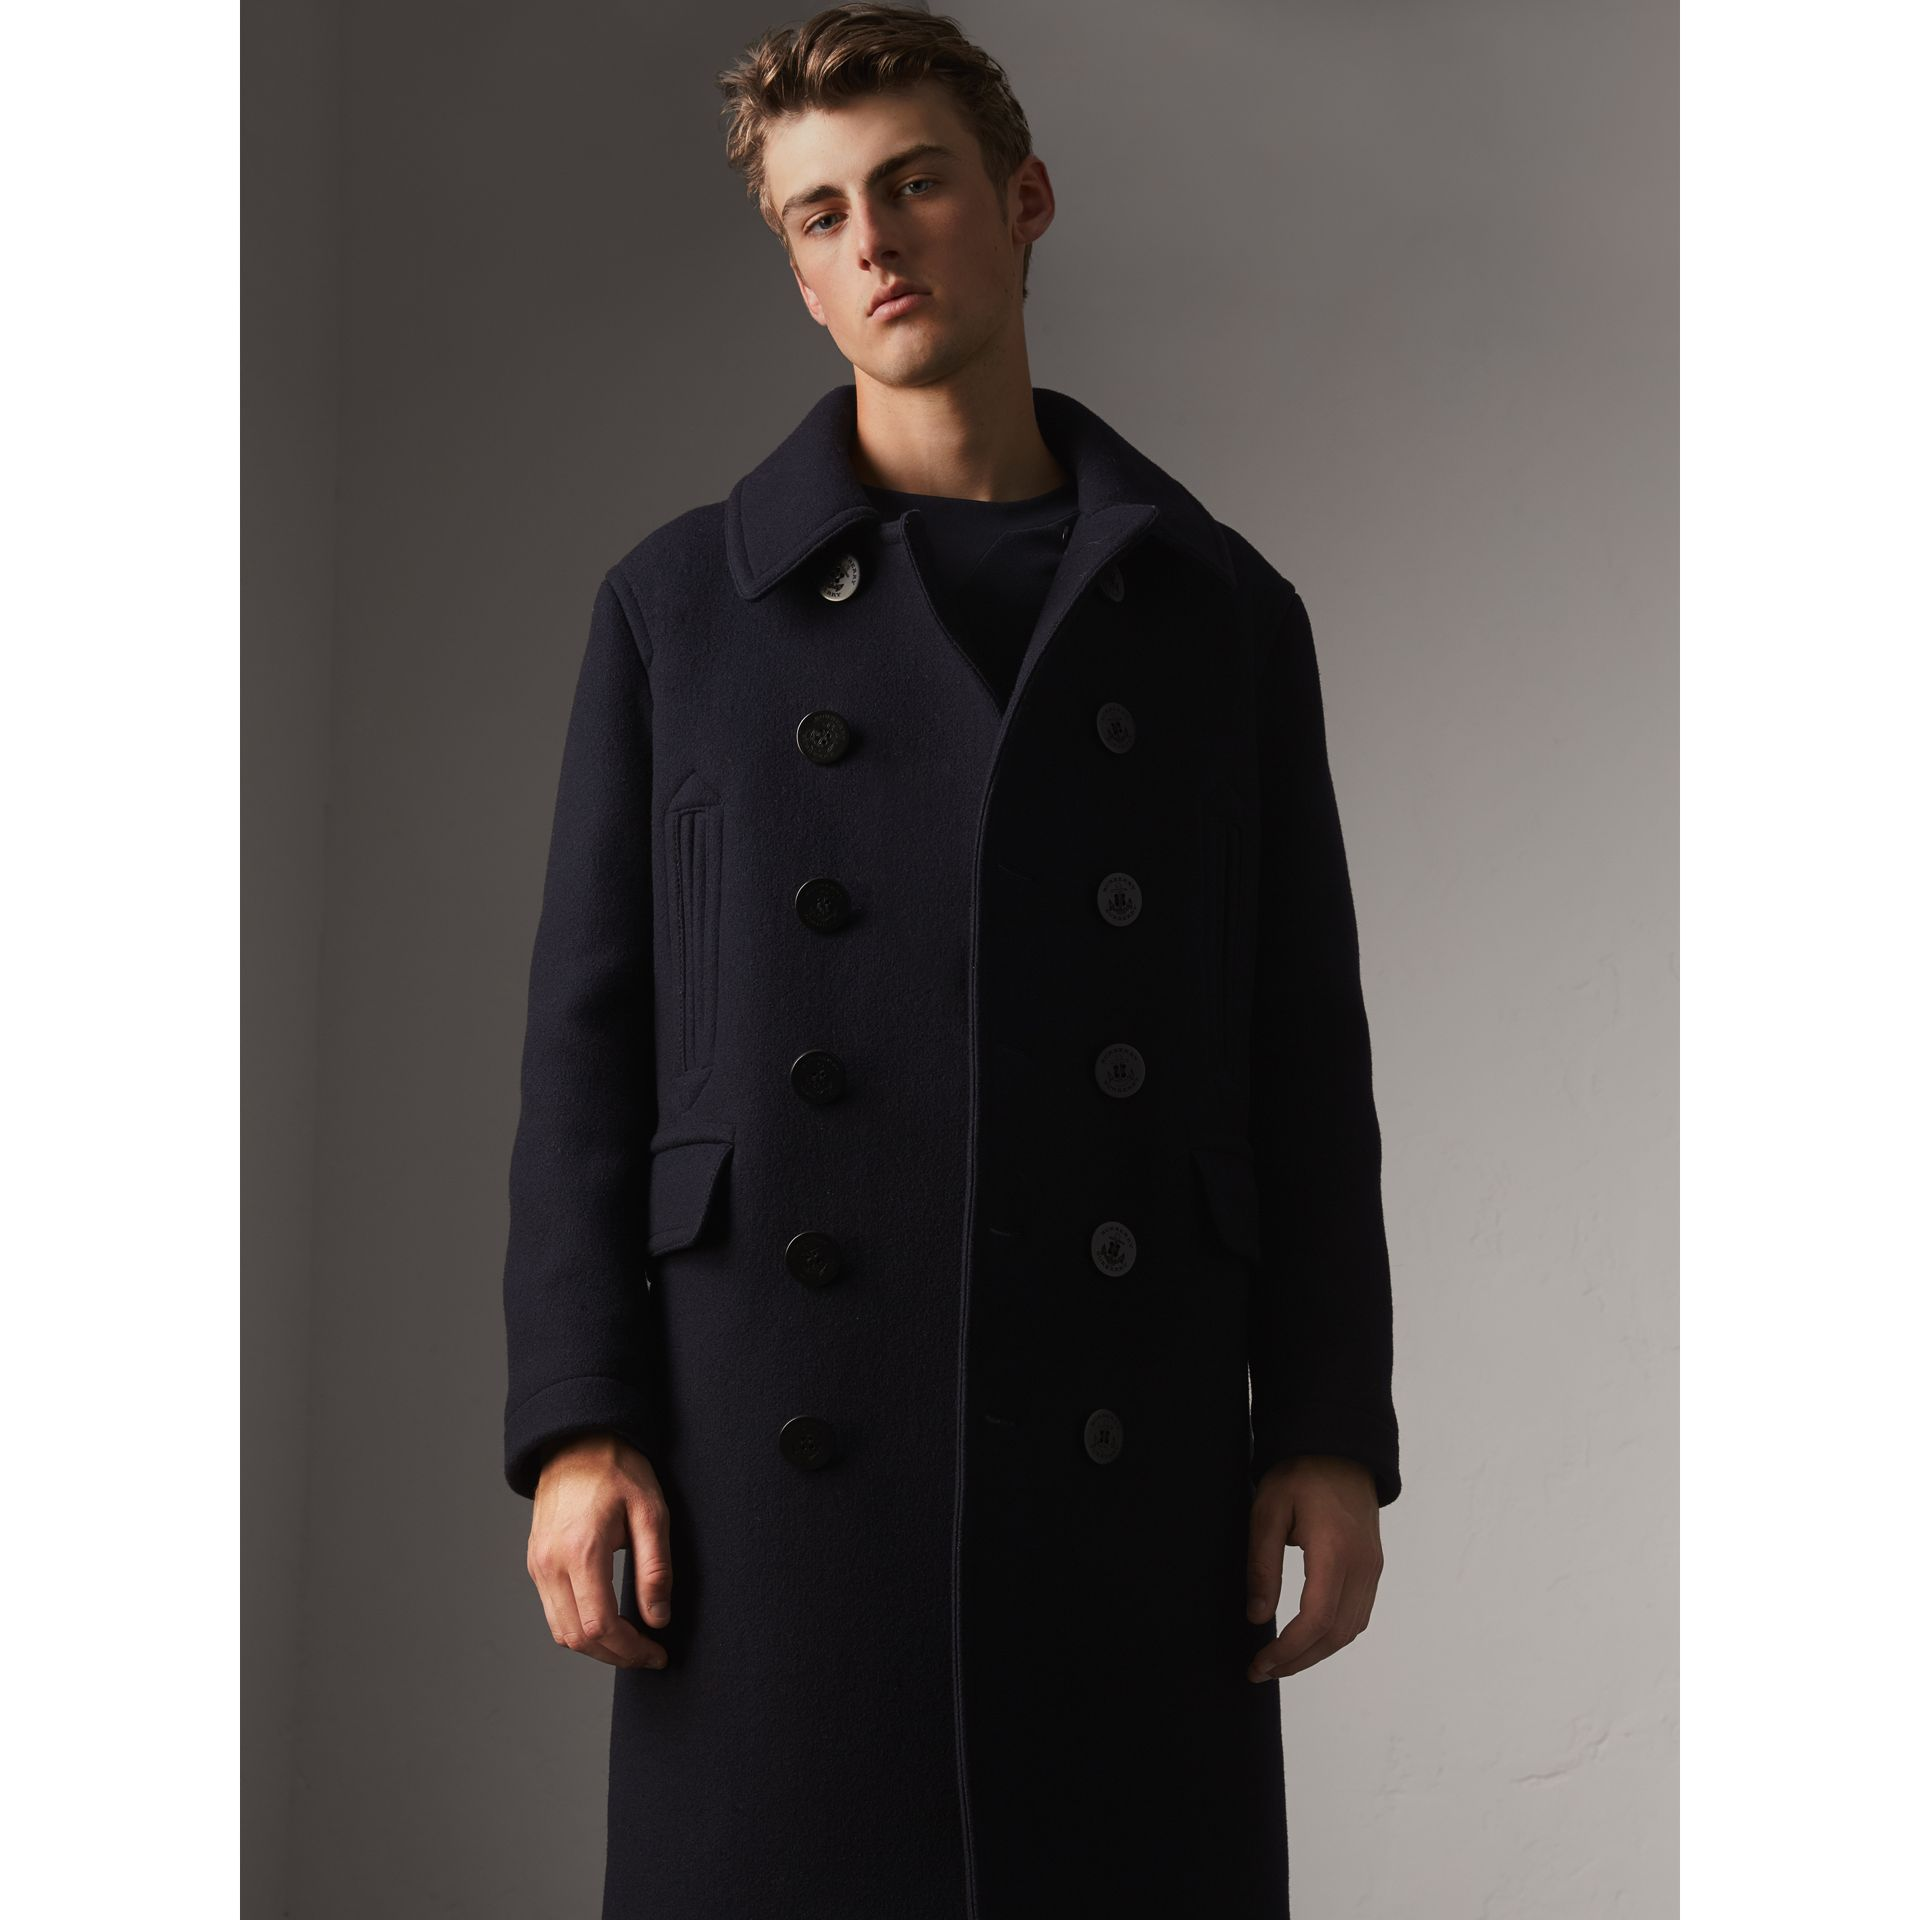 Wool Blend Double-breasted Coat in Navy - Men | Burberry - gallery image 6